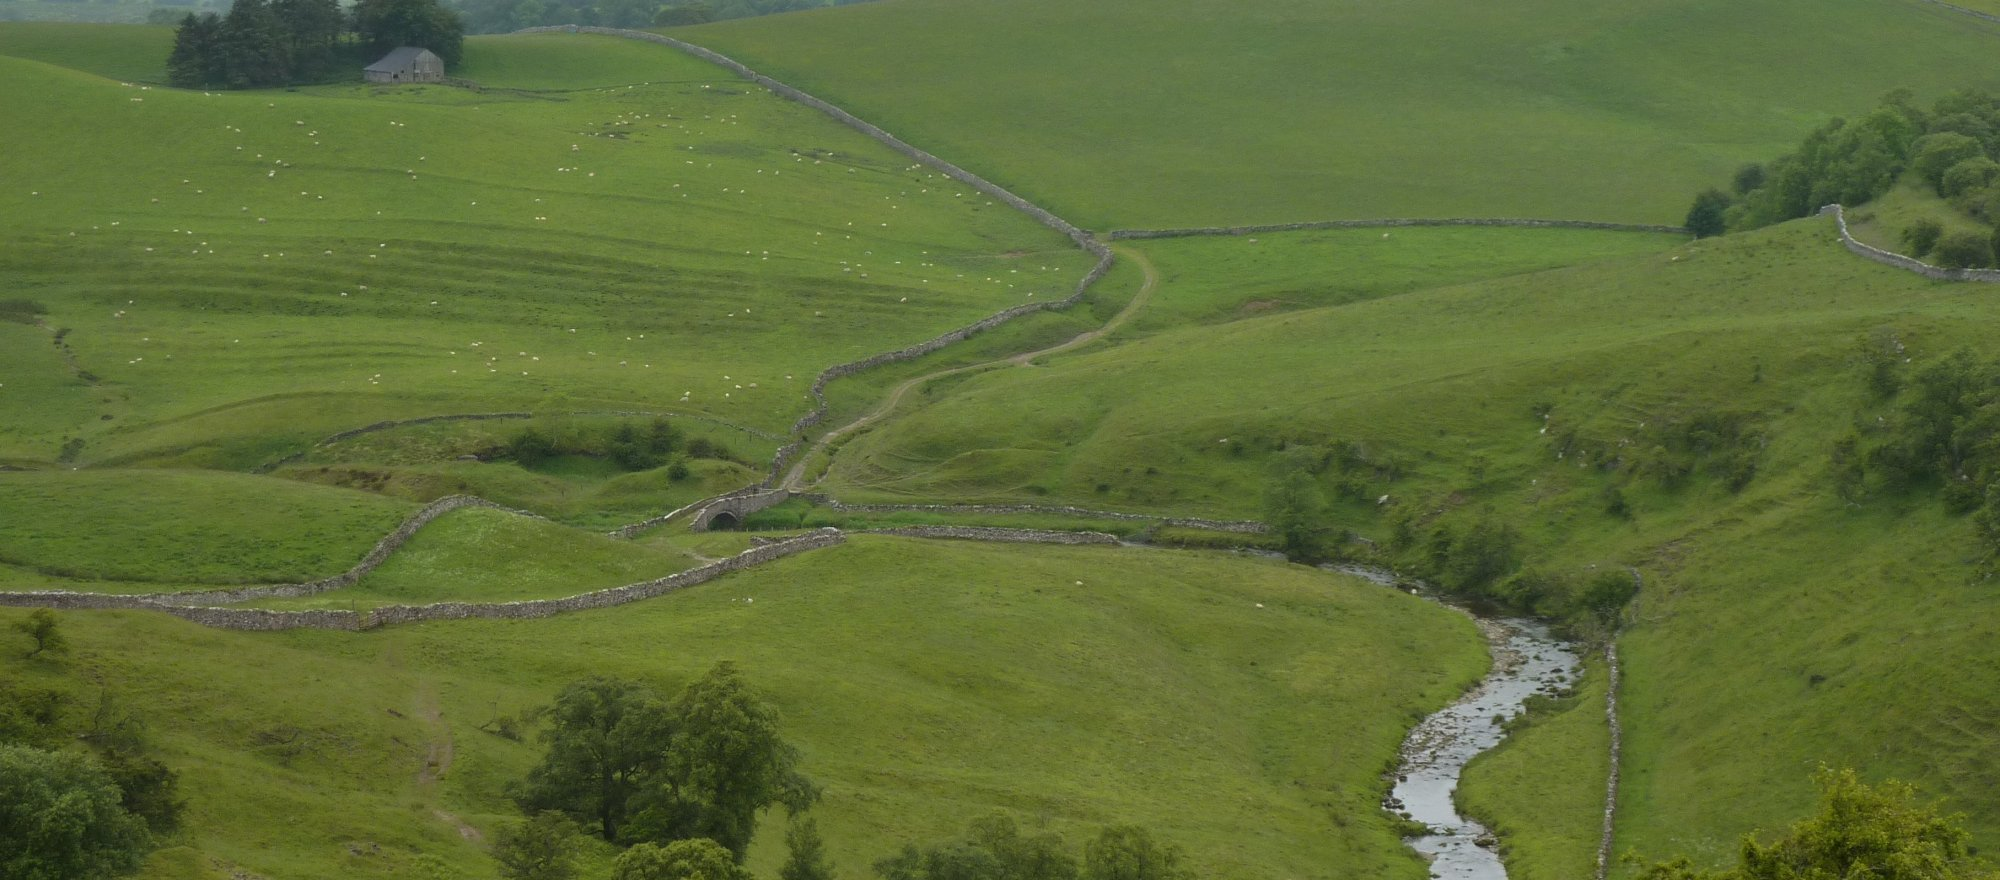 Looking down onto Smardale Bridge